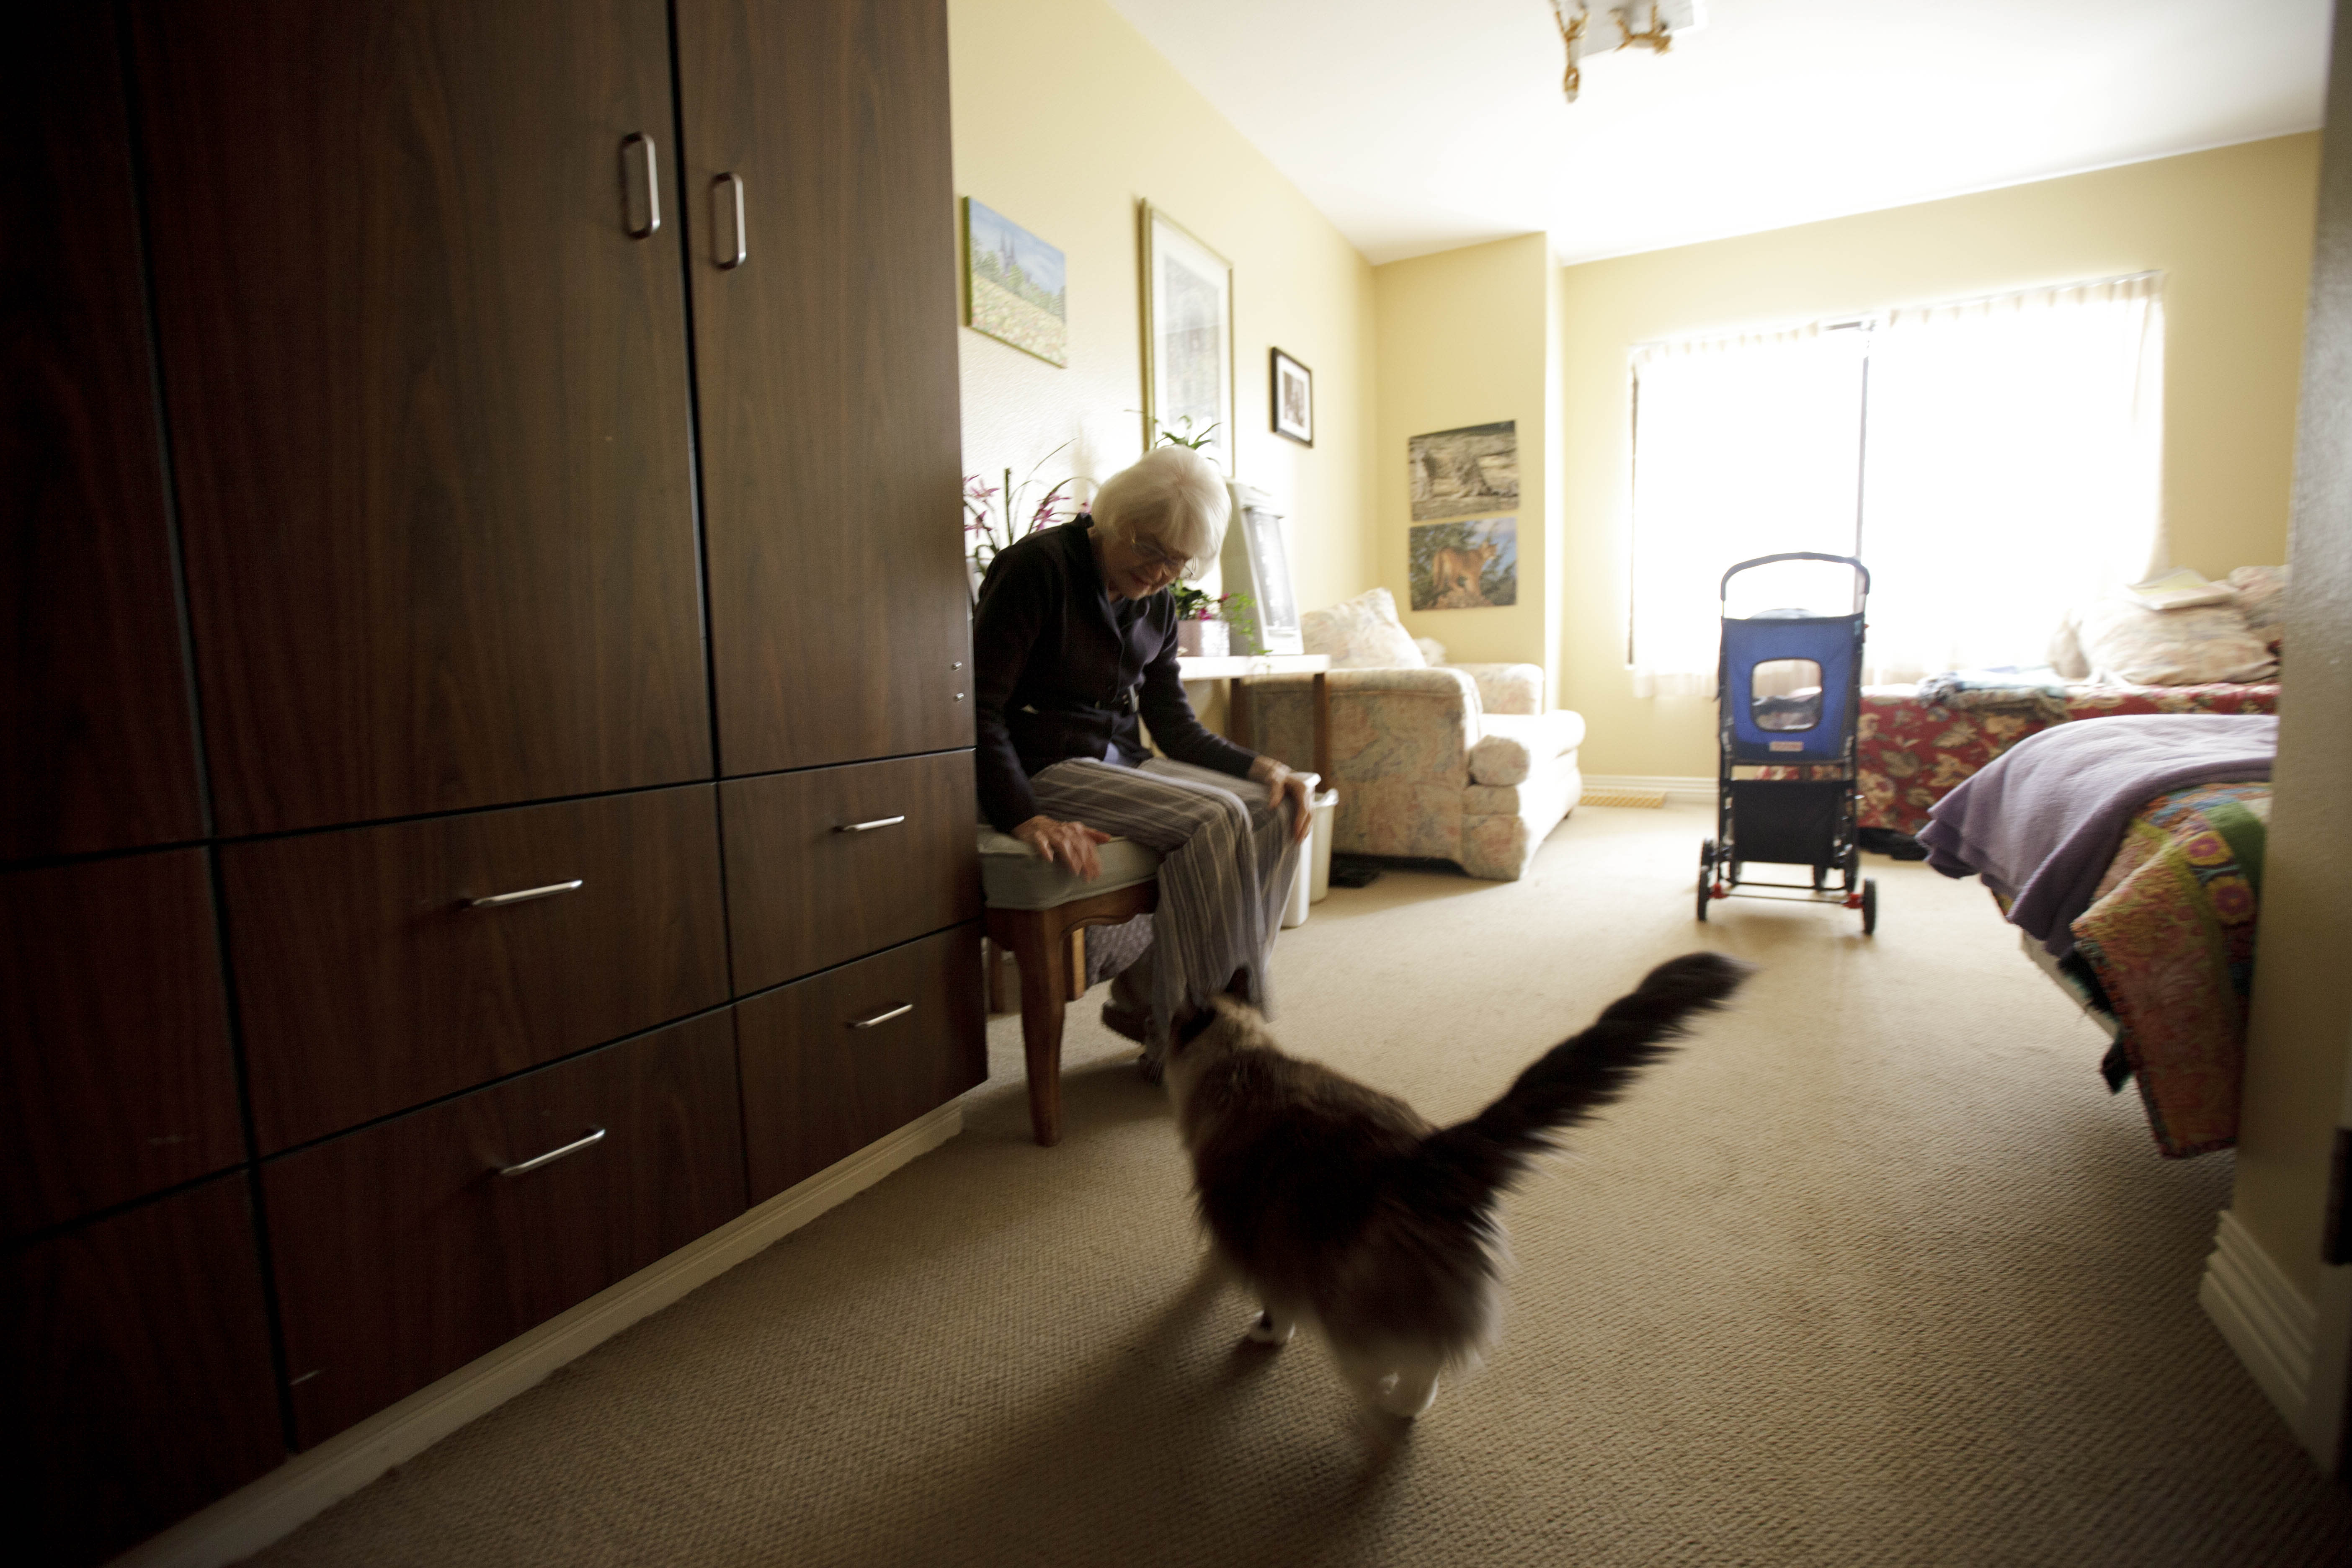 Joyce Kavanagh waits for her cat as she sits in her room at the Silverado Senior Living Center Tuesday, May 1, 2012, in Encinitas, Calif. At the senior center, residents are encouraged to bring their pets. Everything from miniature horses to chinchillas can be found on the grounds, and residents benefit from frequent contact with the pets. (AP Photo/Gregory Bull)